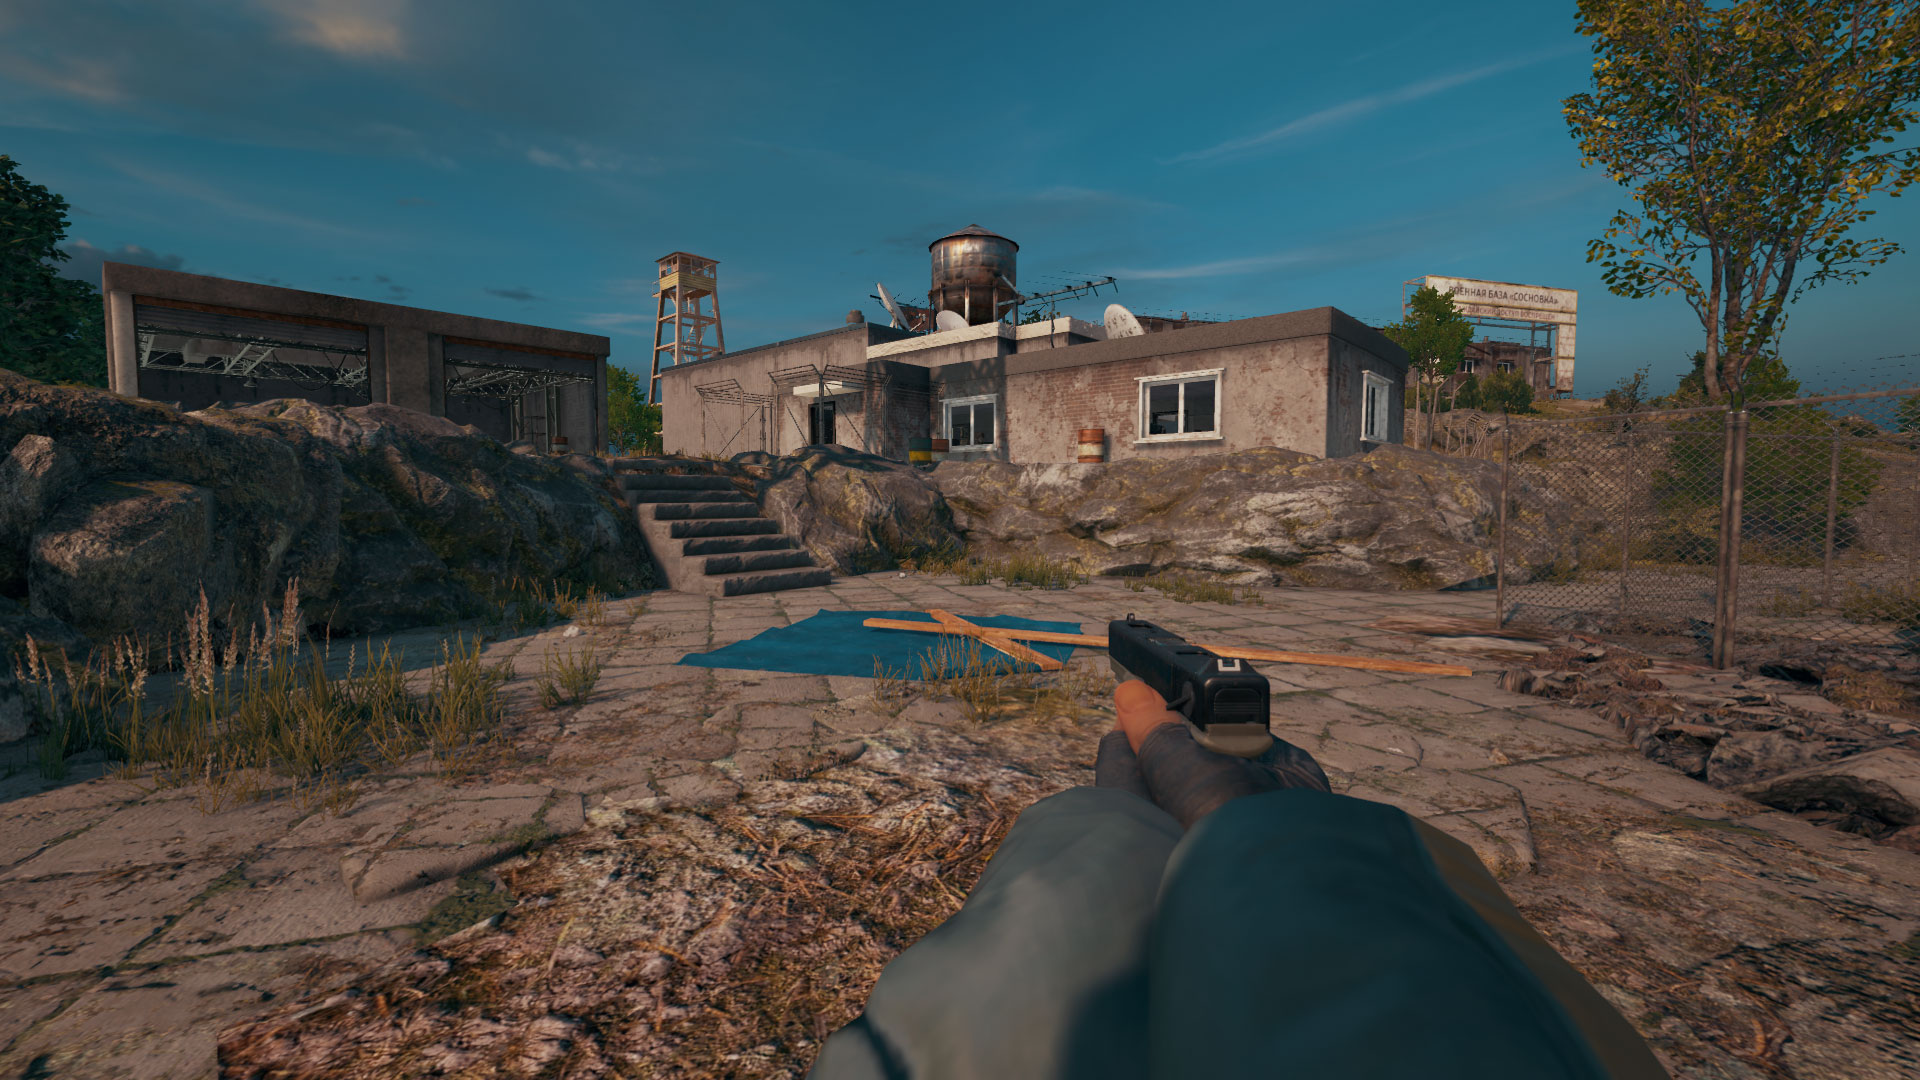 FPP screenshot of PUBG player on Spawn Island holding a P18C pistol.